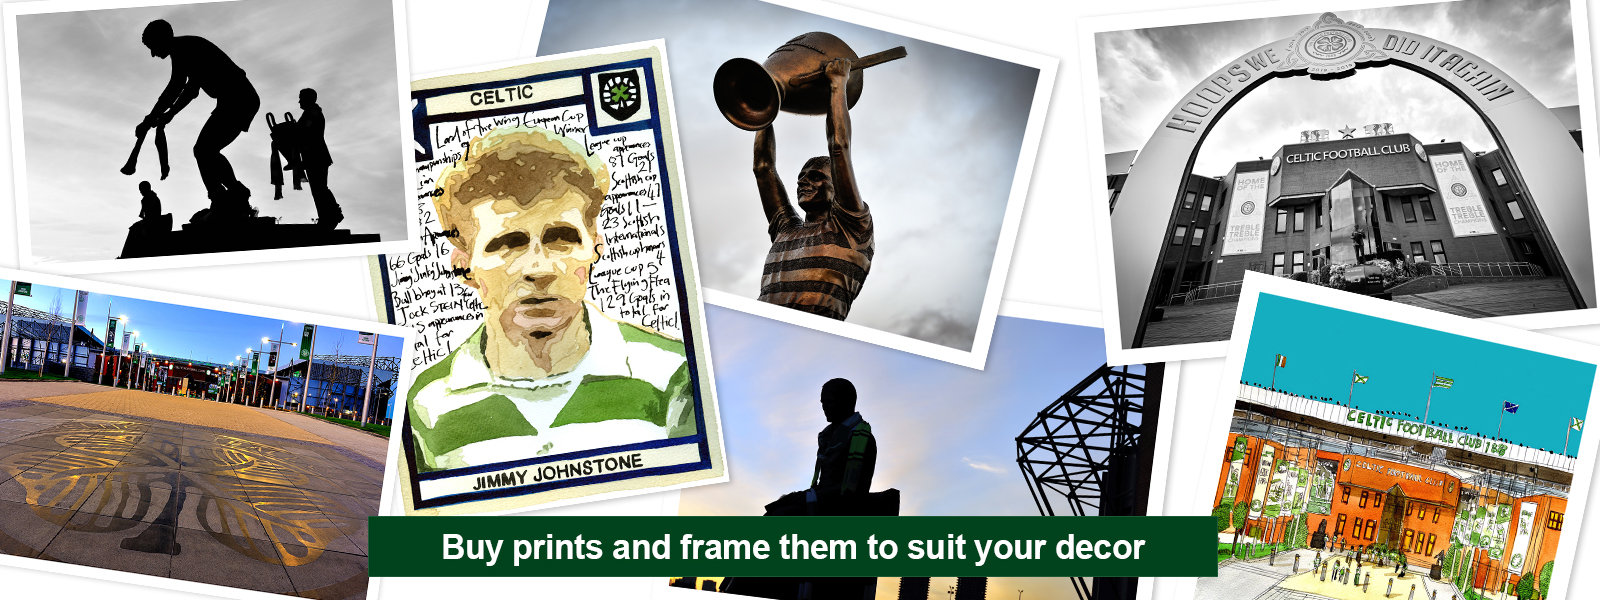 Celtic Home Page Slider